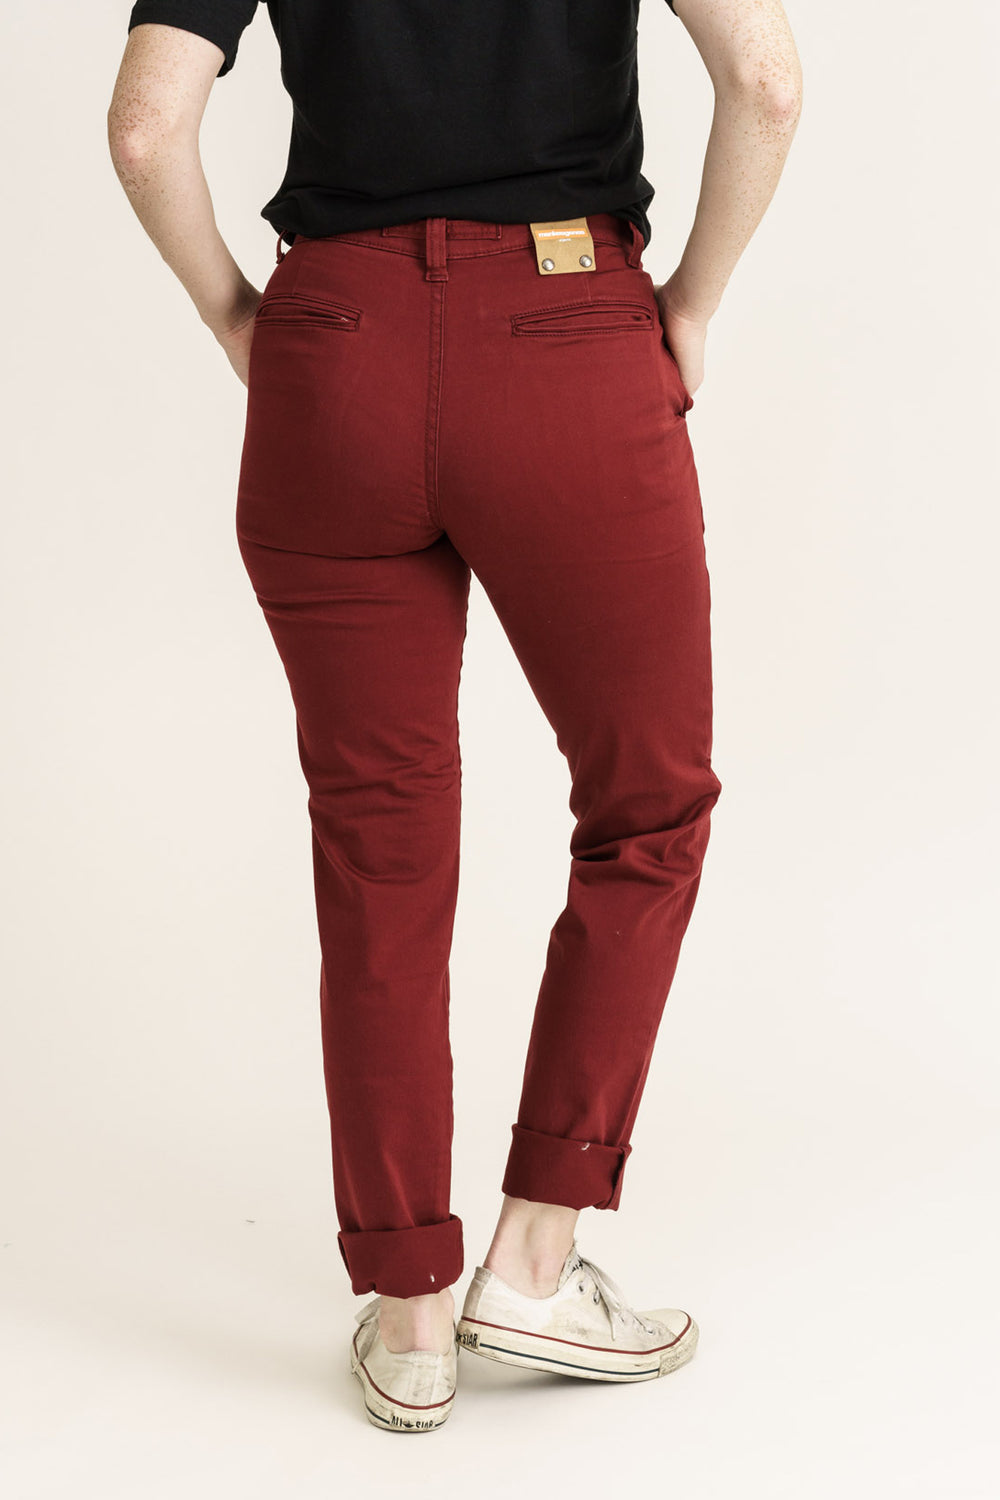 Wine Tapered Fit Organic Sateen Chino - Monkee Genes Organic Jeans Denim - Women's Chinos Monkee Genes Official  Monkee Genes Official